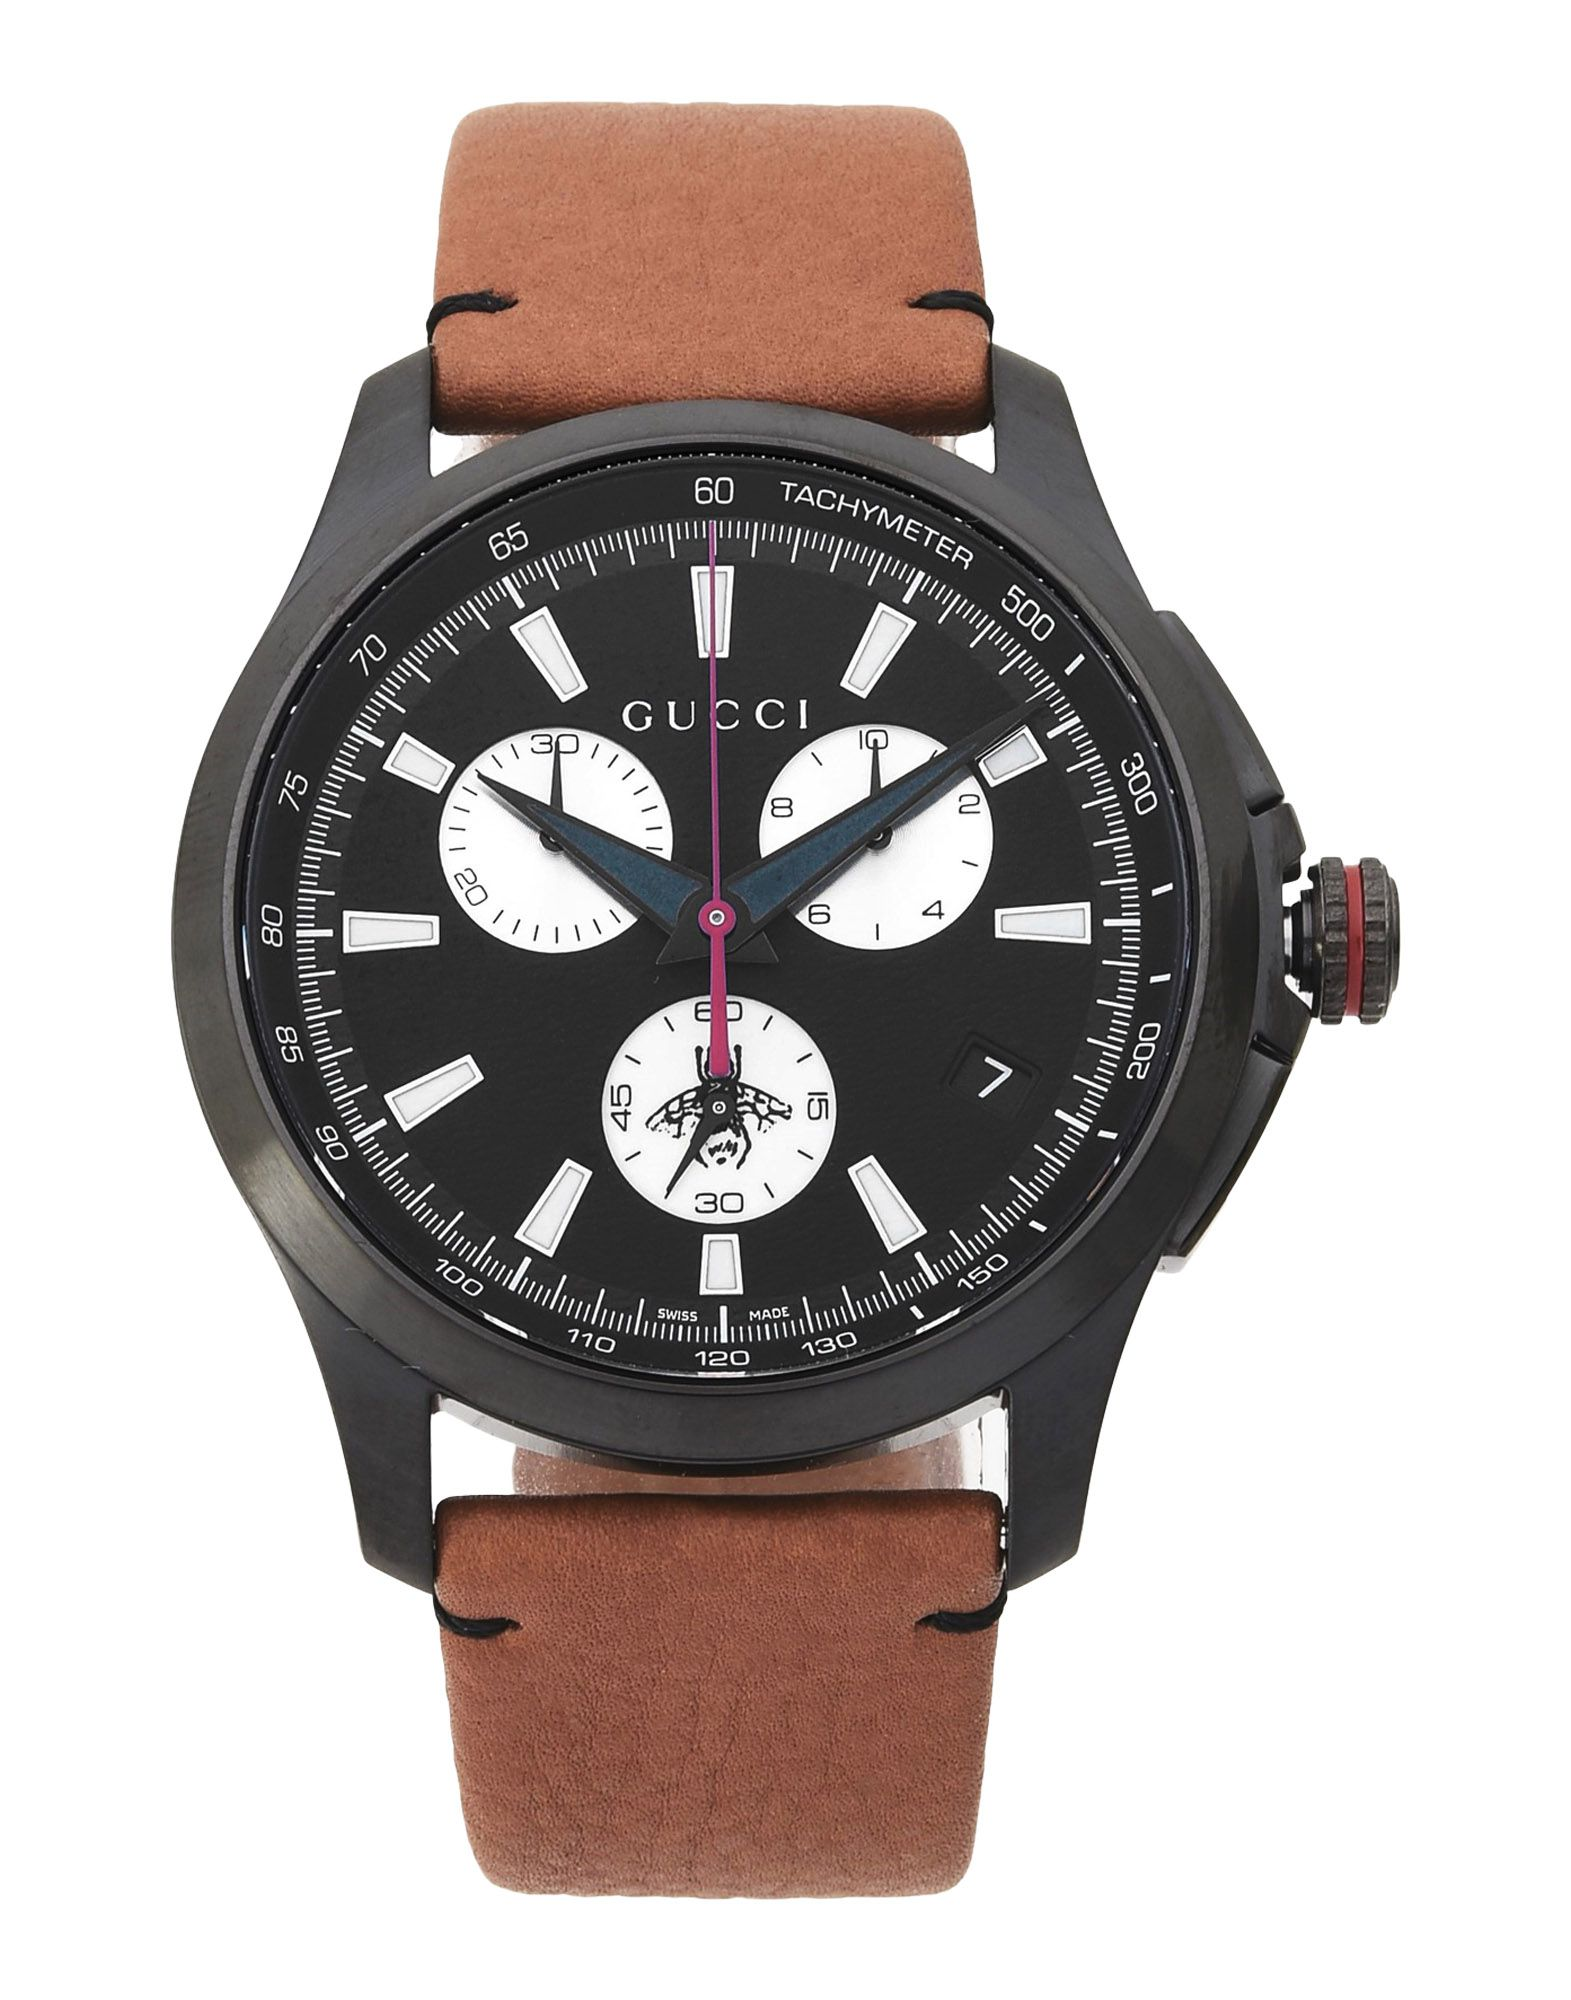 GUCCI Wrist watches. logo, adjustable buckle fastening, case material: stainless steel, strap material: leather, contains non-textile parts of animal origin. Stainless Steel, Calfskin